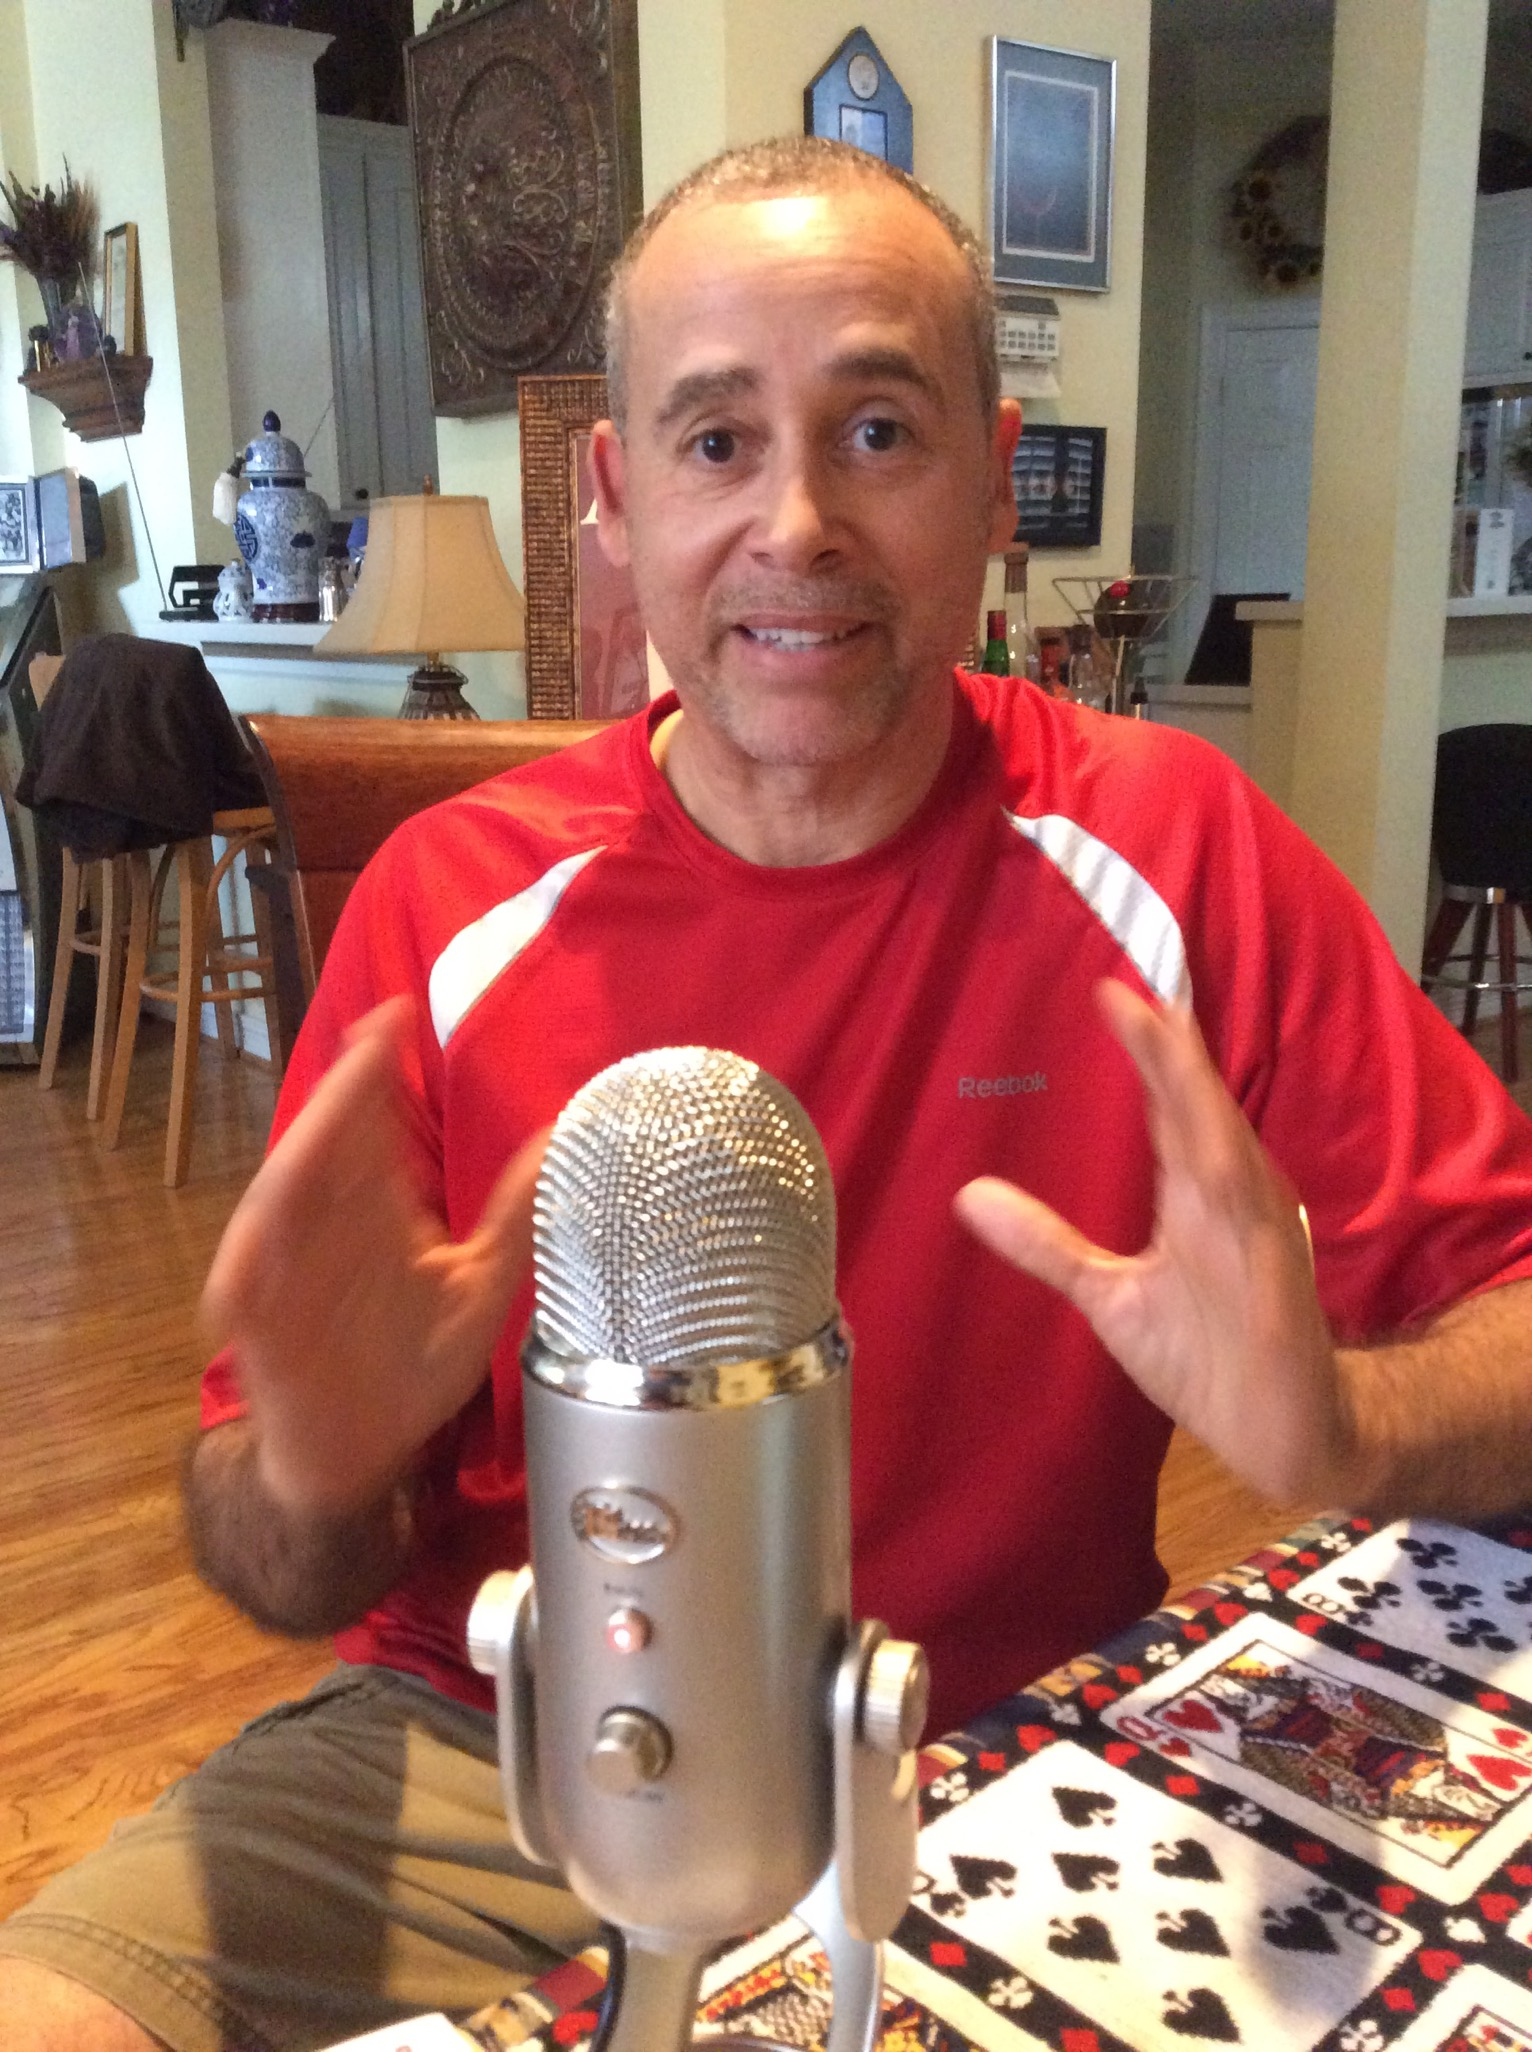 Carl Andrews chats on The Magic Word Podcast